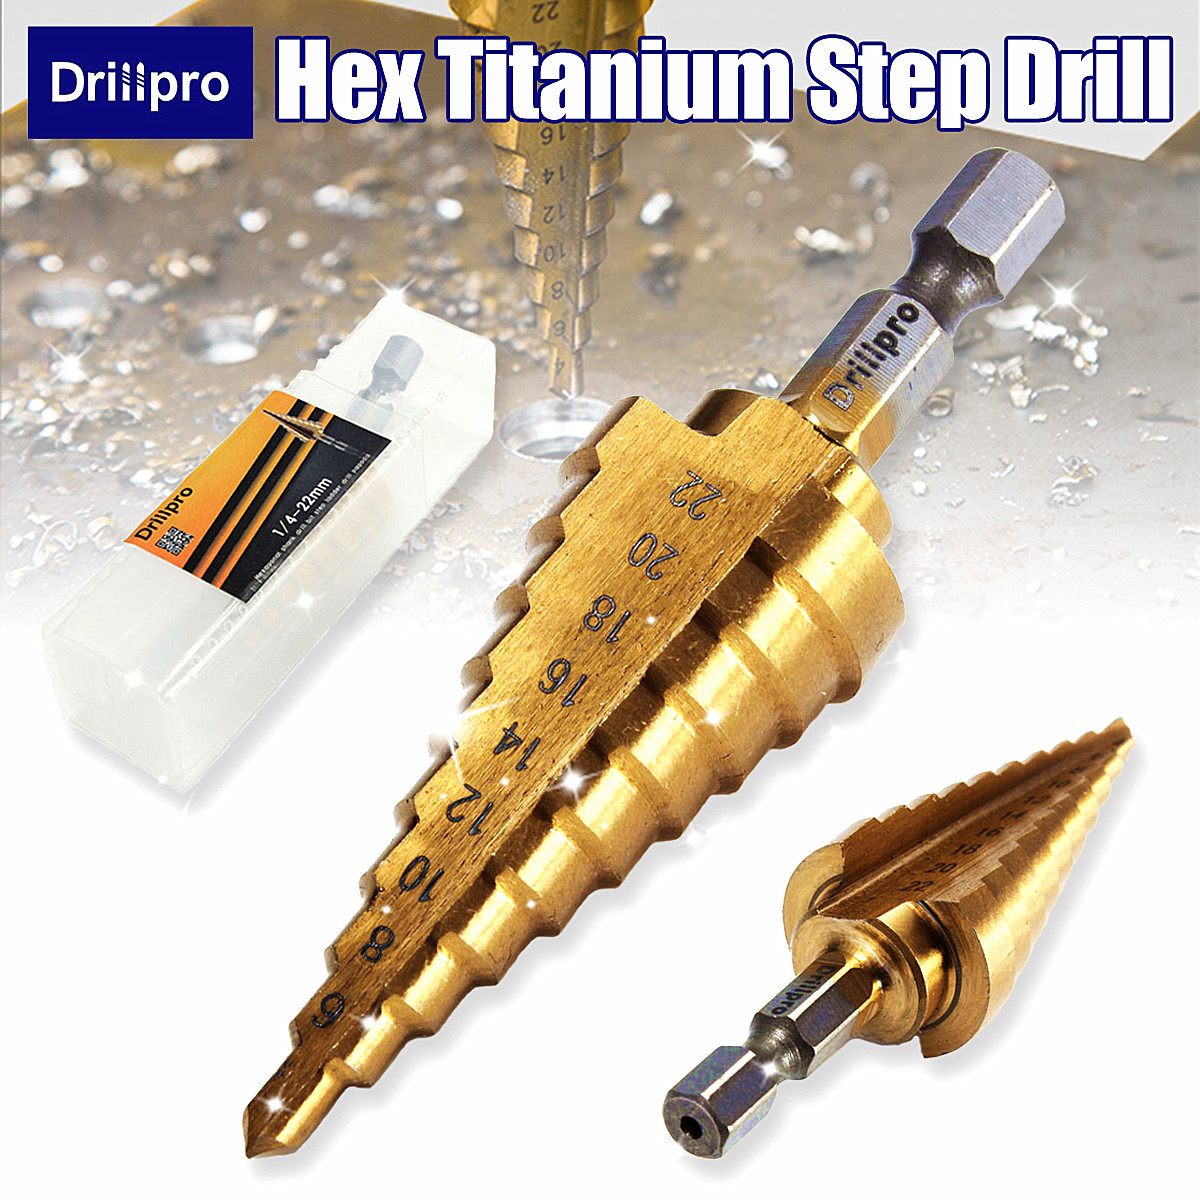 Drillpro 1PC Hex Titanium Step Cone Drill Bit Hole Cutter 4-22MM HSS 4241 For Sheet Metal Drilling Woodworking Tools